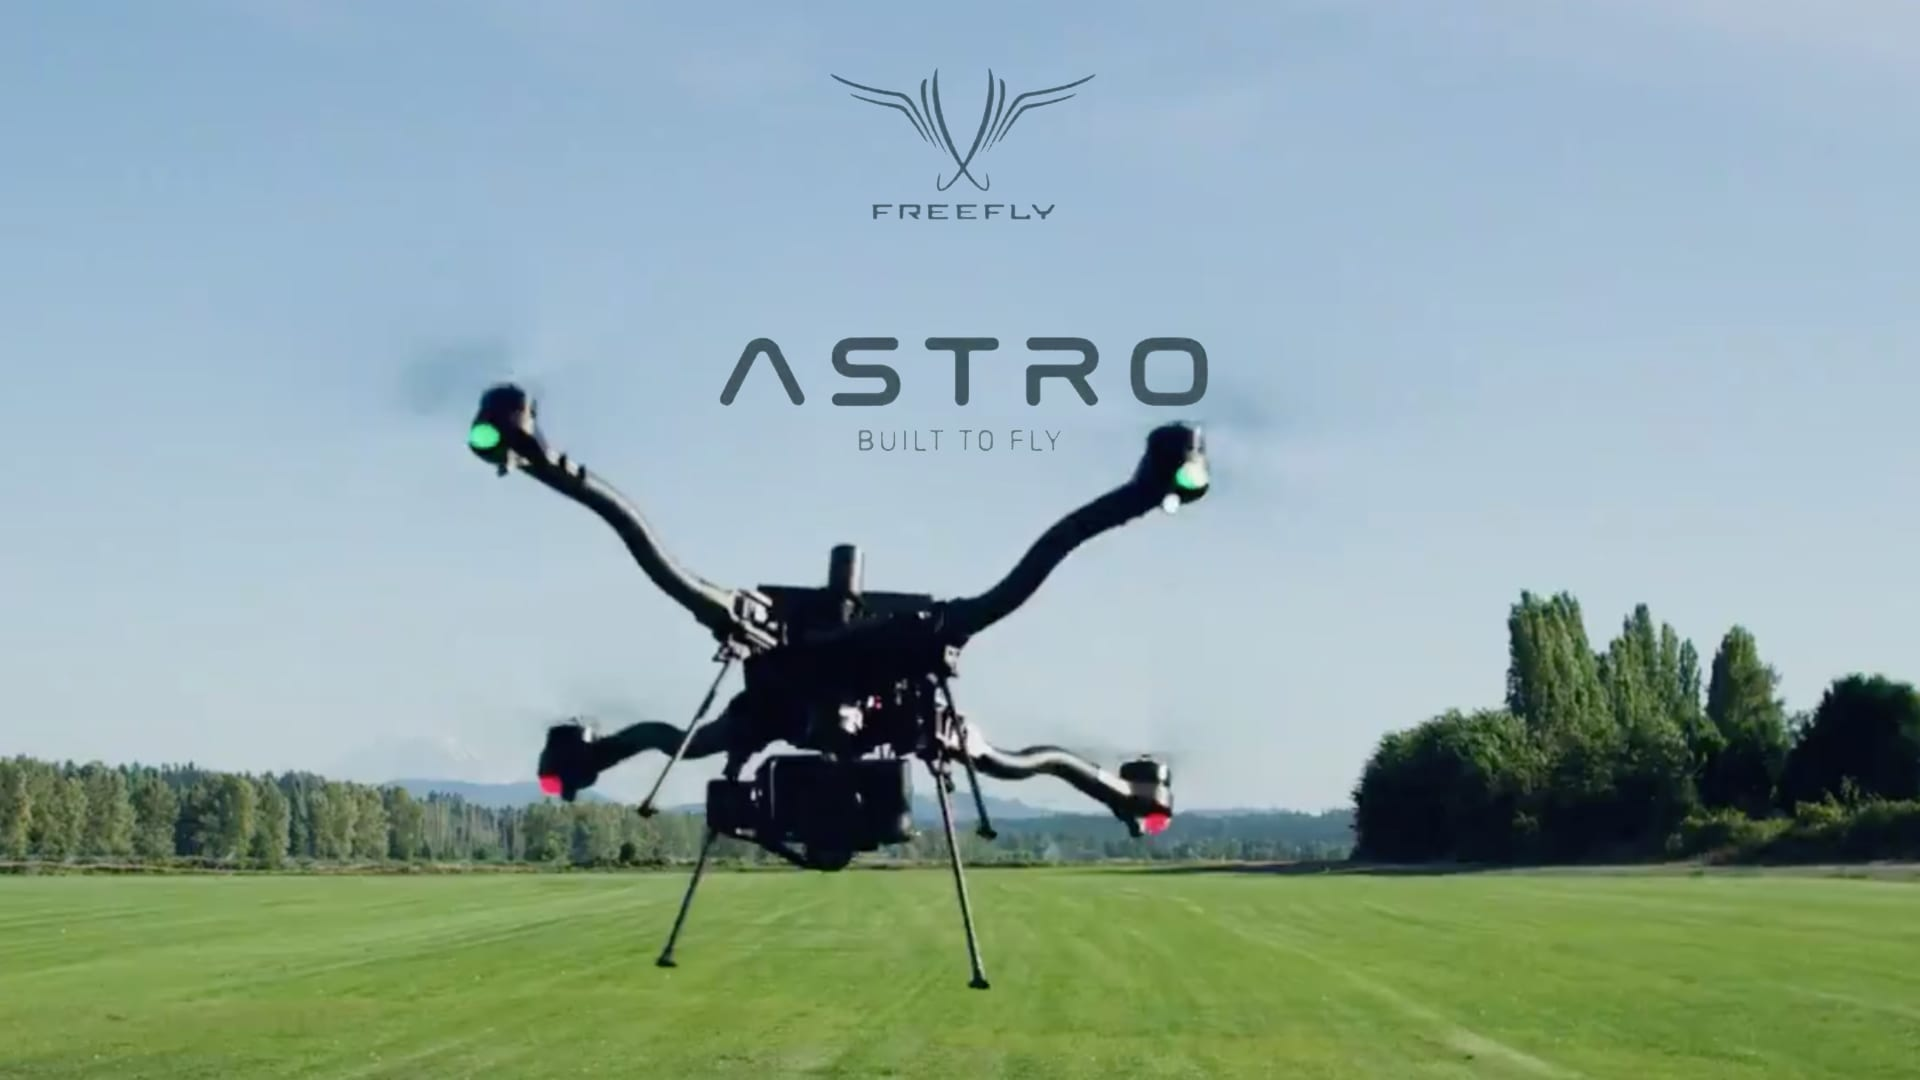 Waiting for the Mavic 3 release? Check out the FreeFly Astro instead!